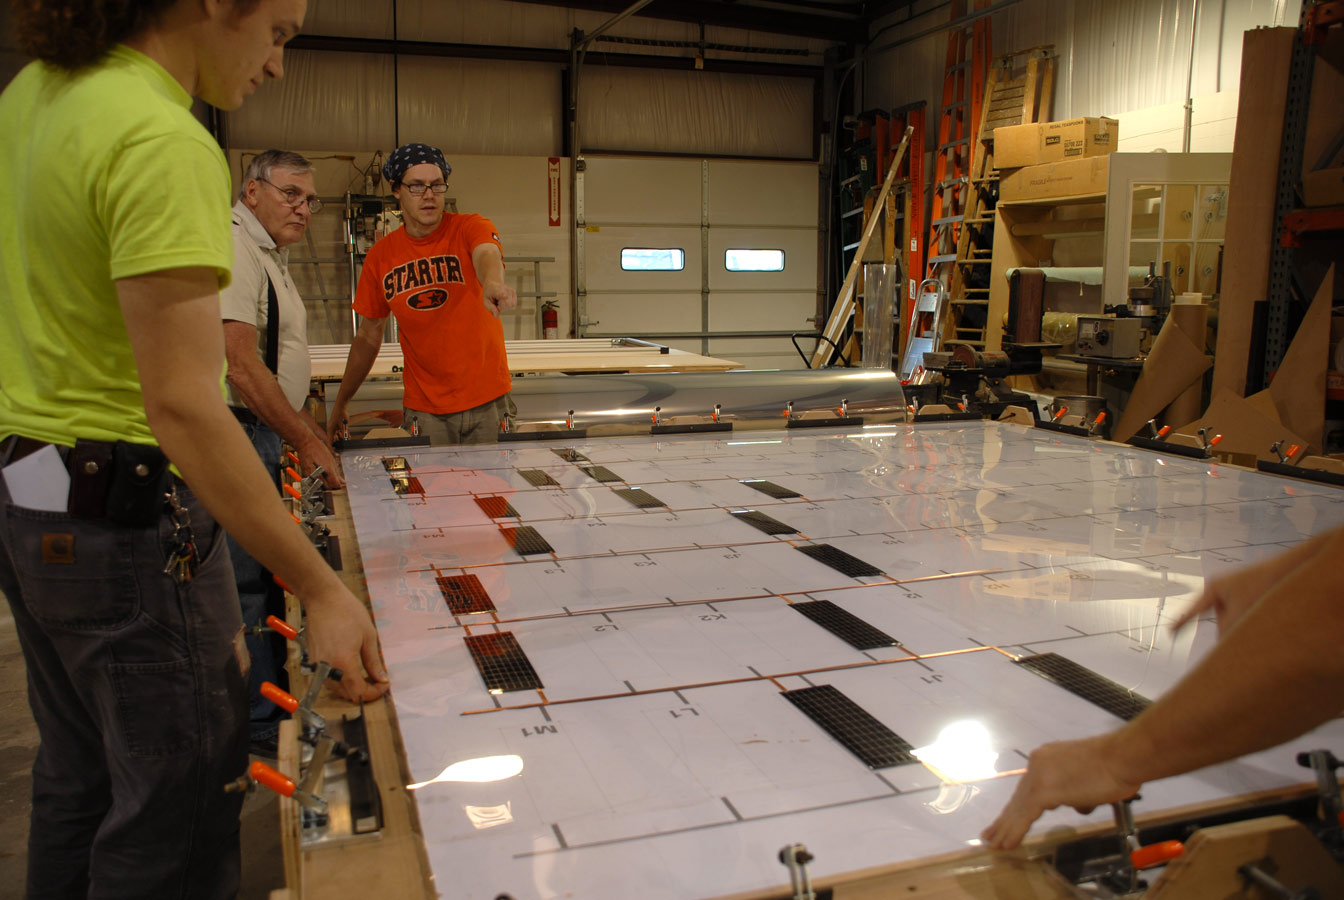 <p>The fabricator, Universal Services Associates, Inc., built a custom table to stretch the PET to achieve the best balance of tension and stability for the frames. The table included a template to guide the placement of thin-film PVs.</p>